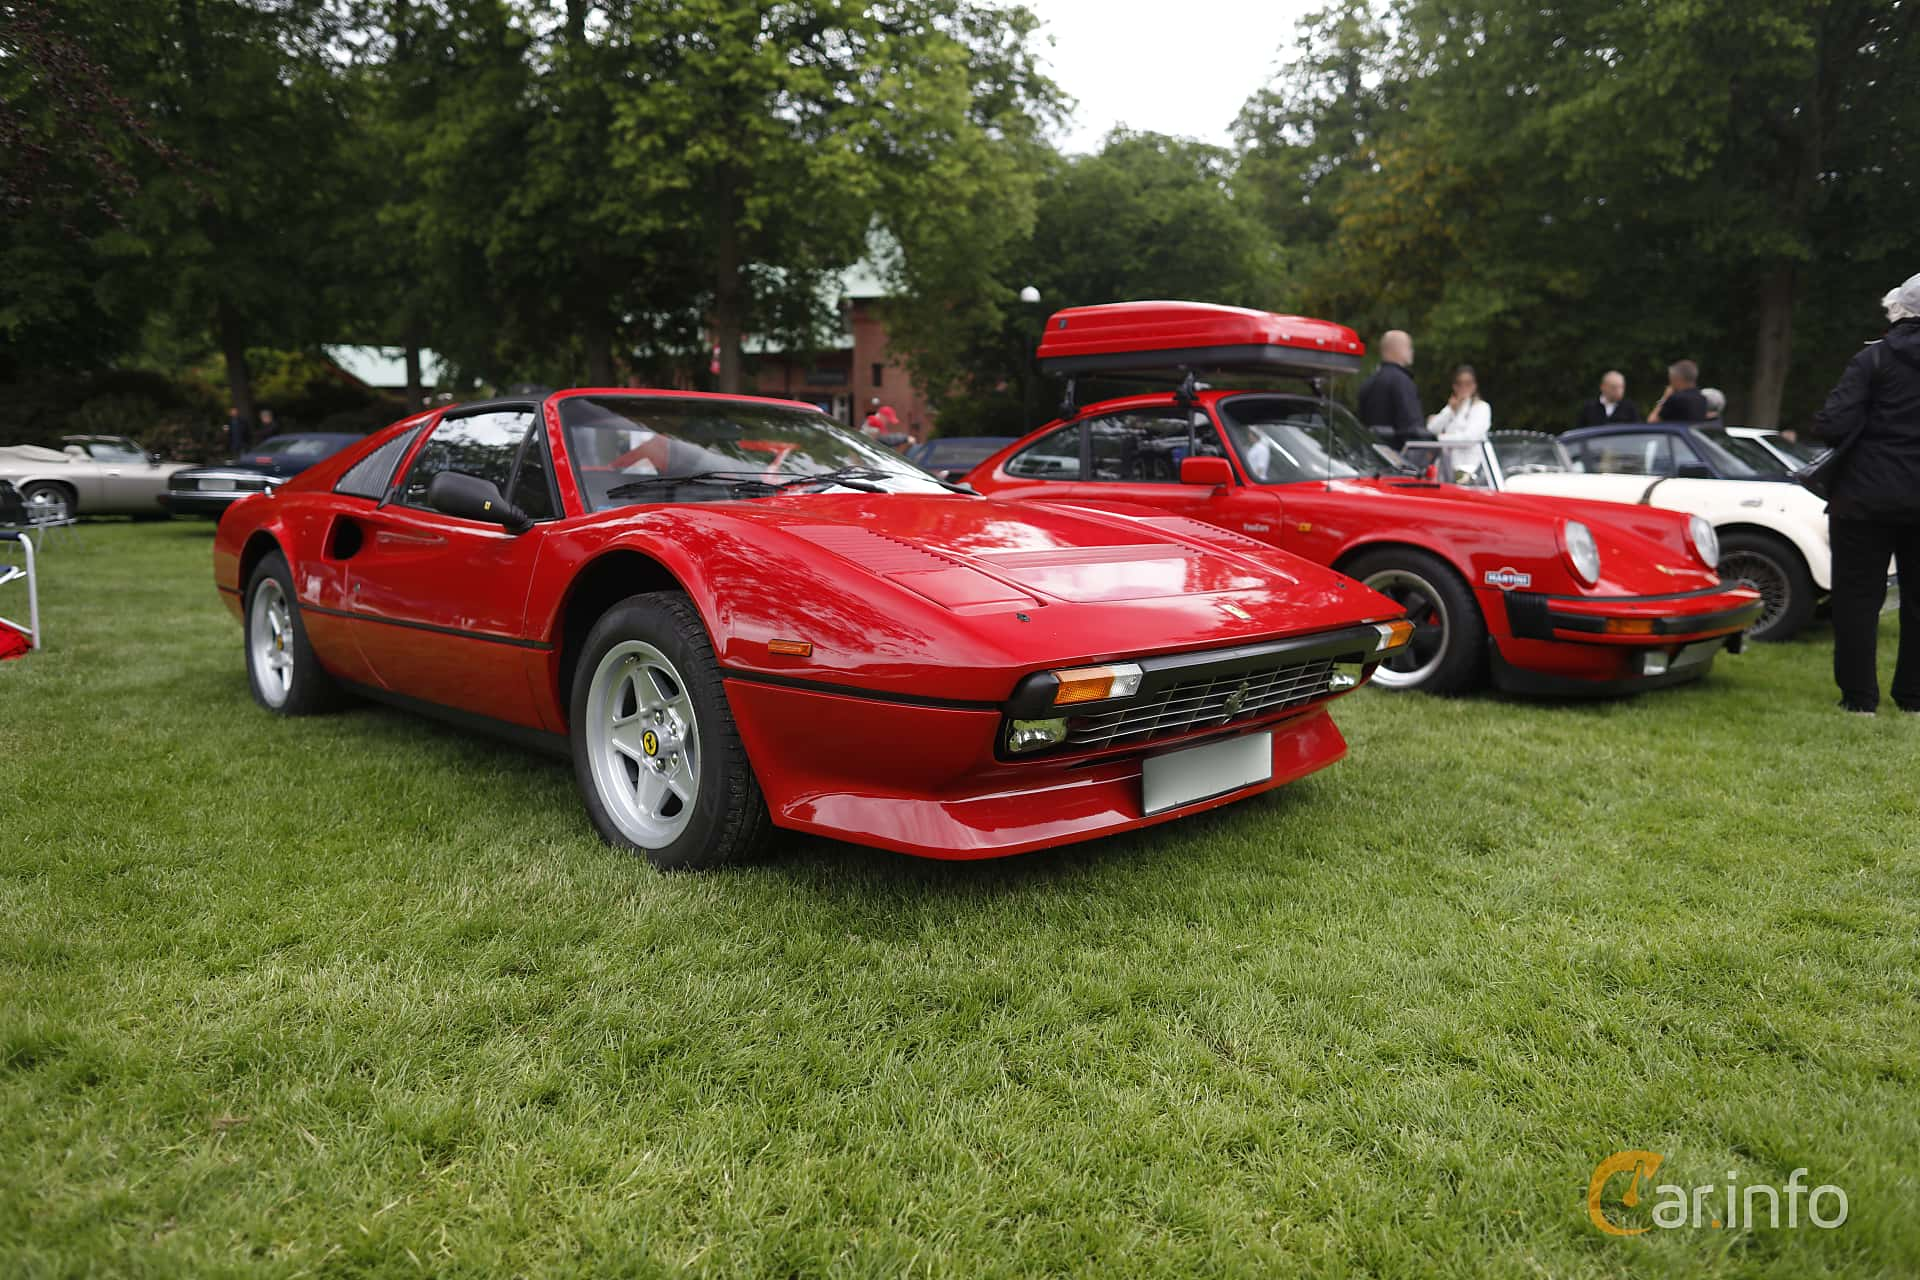 Ferrari 308 GTSi Quattrovalvole 2.9 V8 Manual, 240hp, 1985 at Sofiero Classic 2019